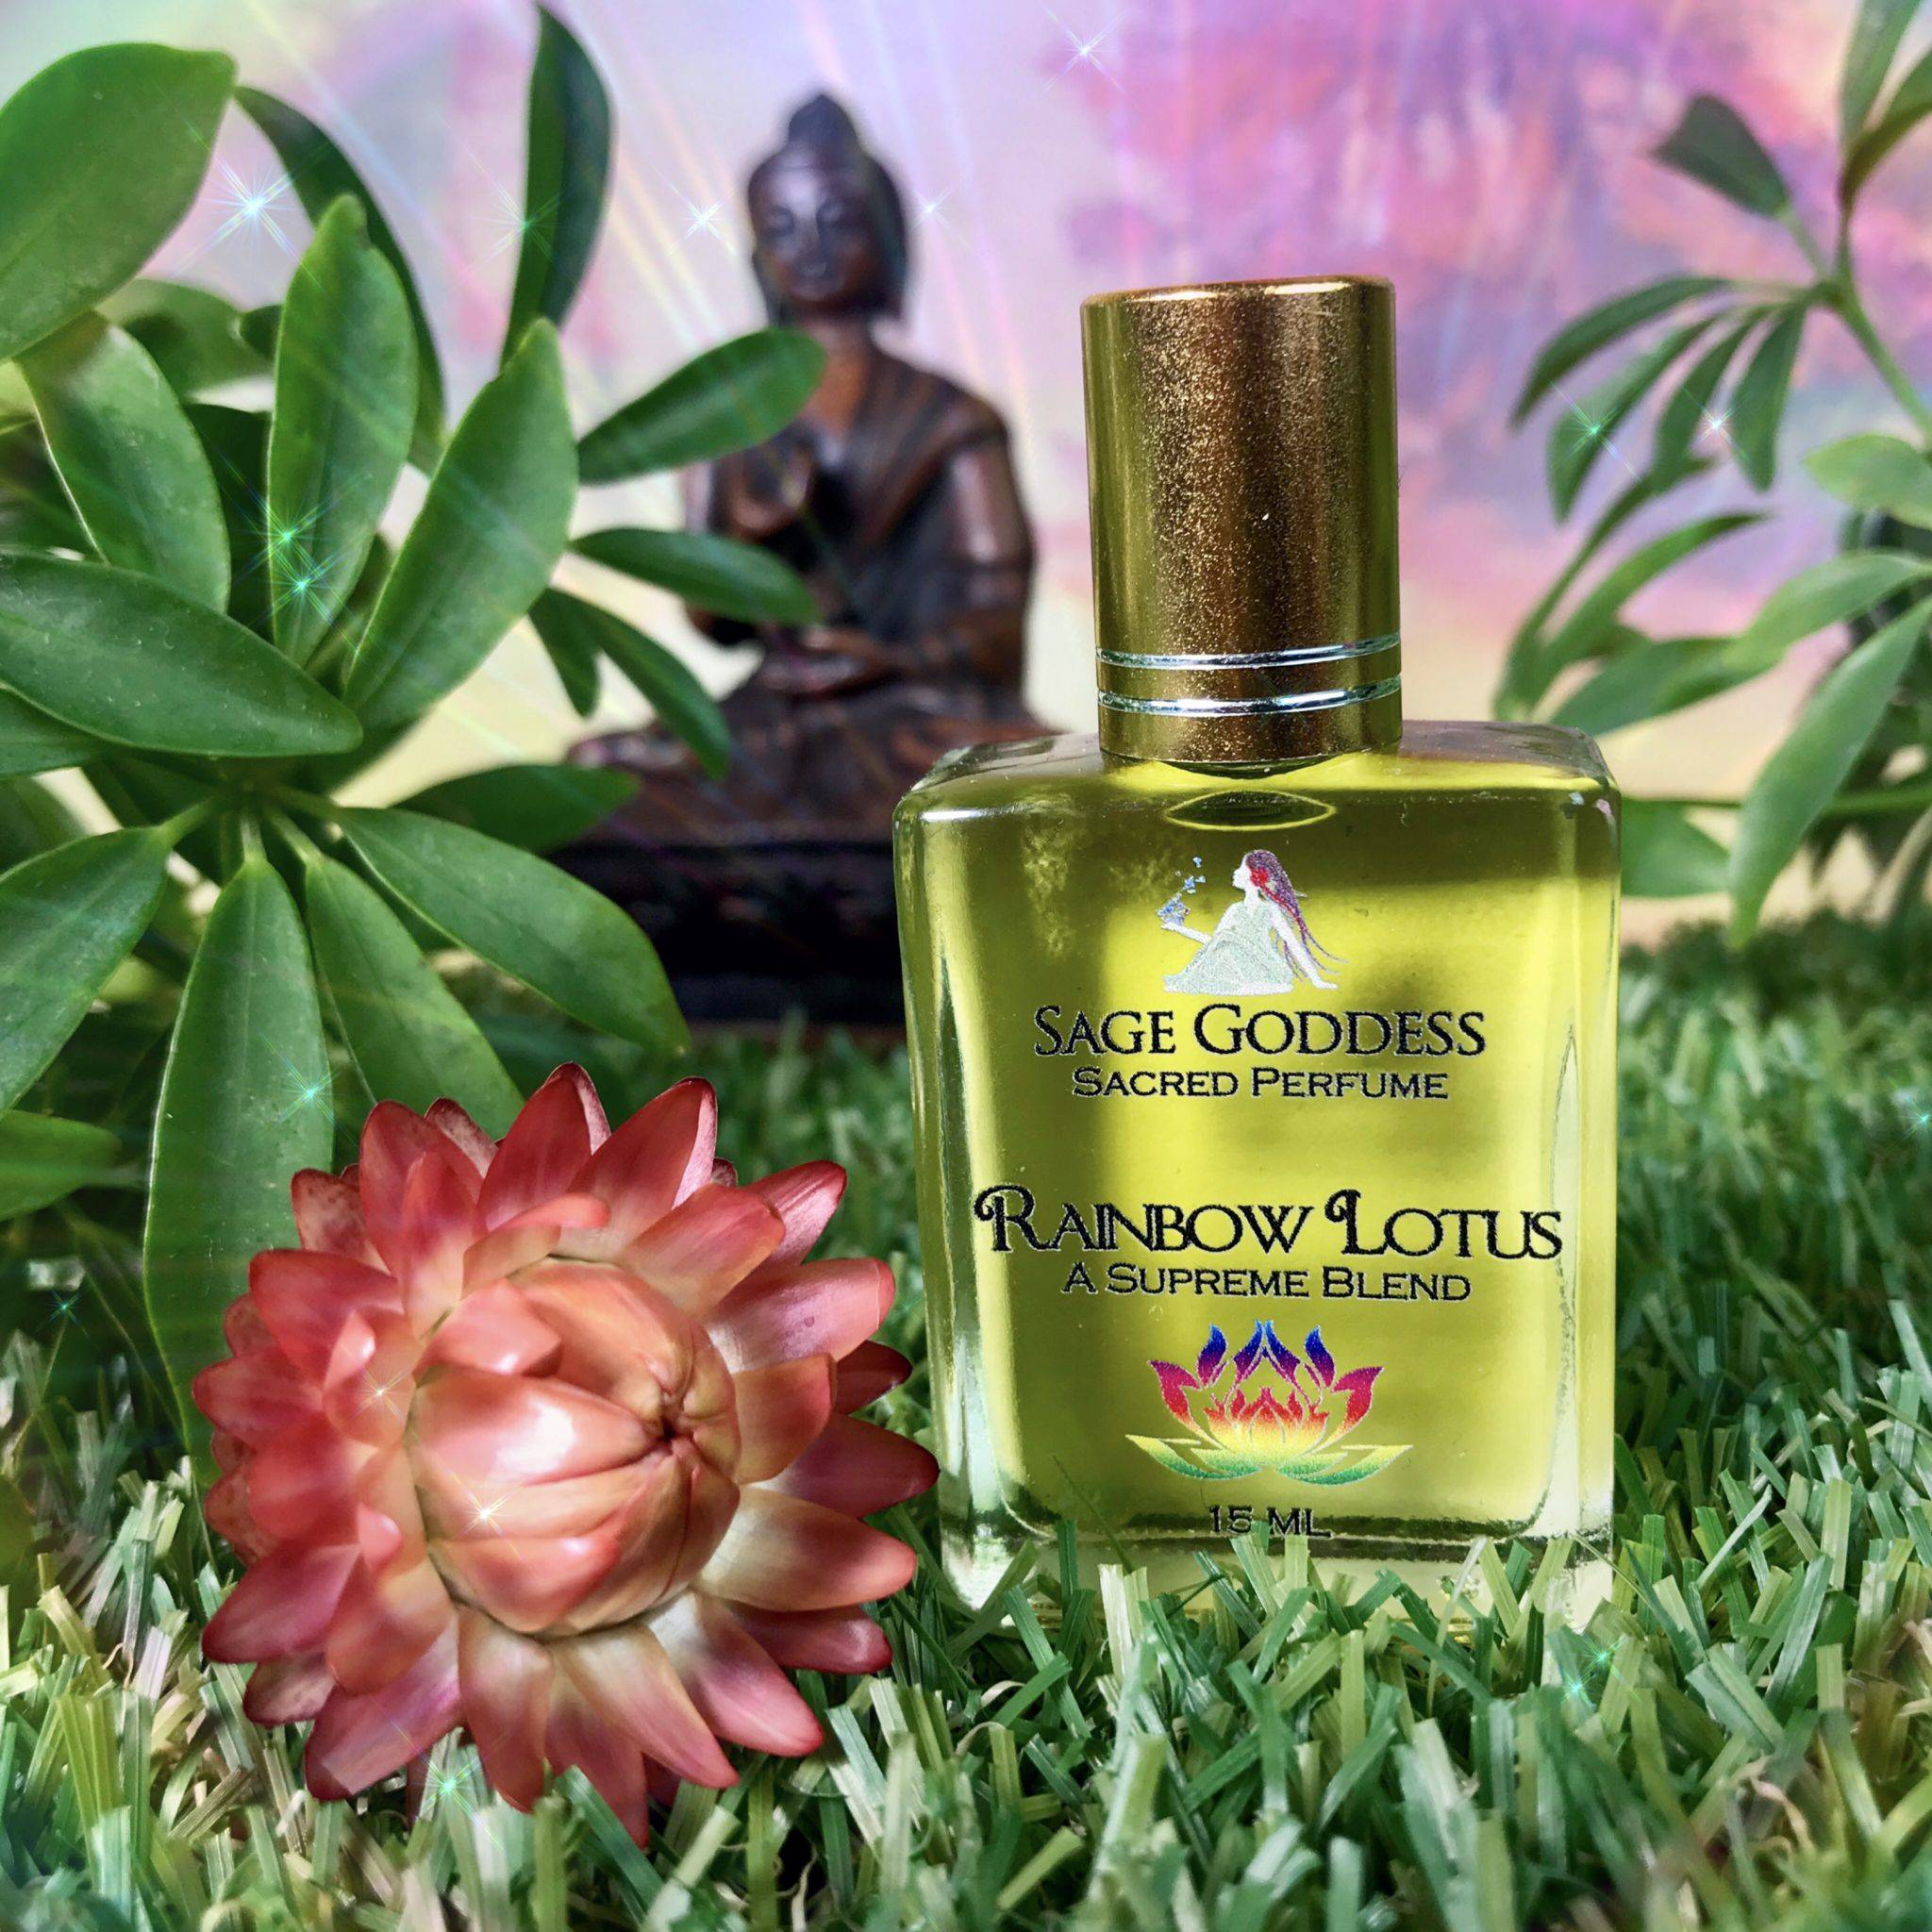 Rainbow Lotus Perfume For Enlightenment And Higher Consciousness